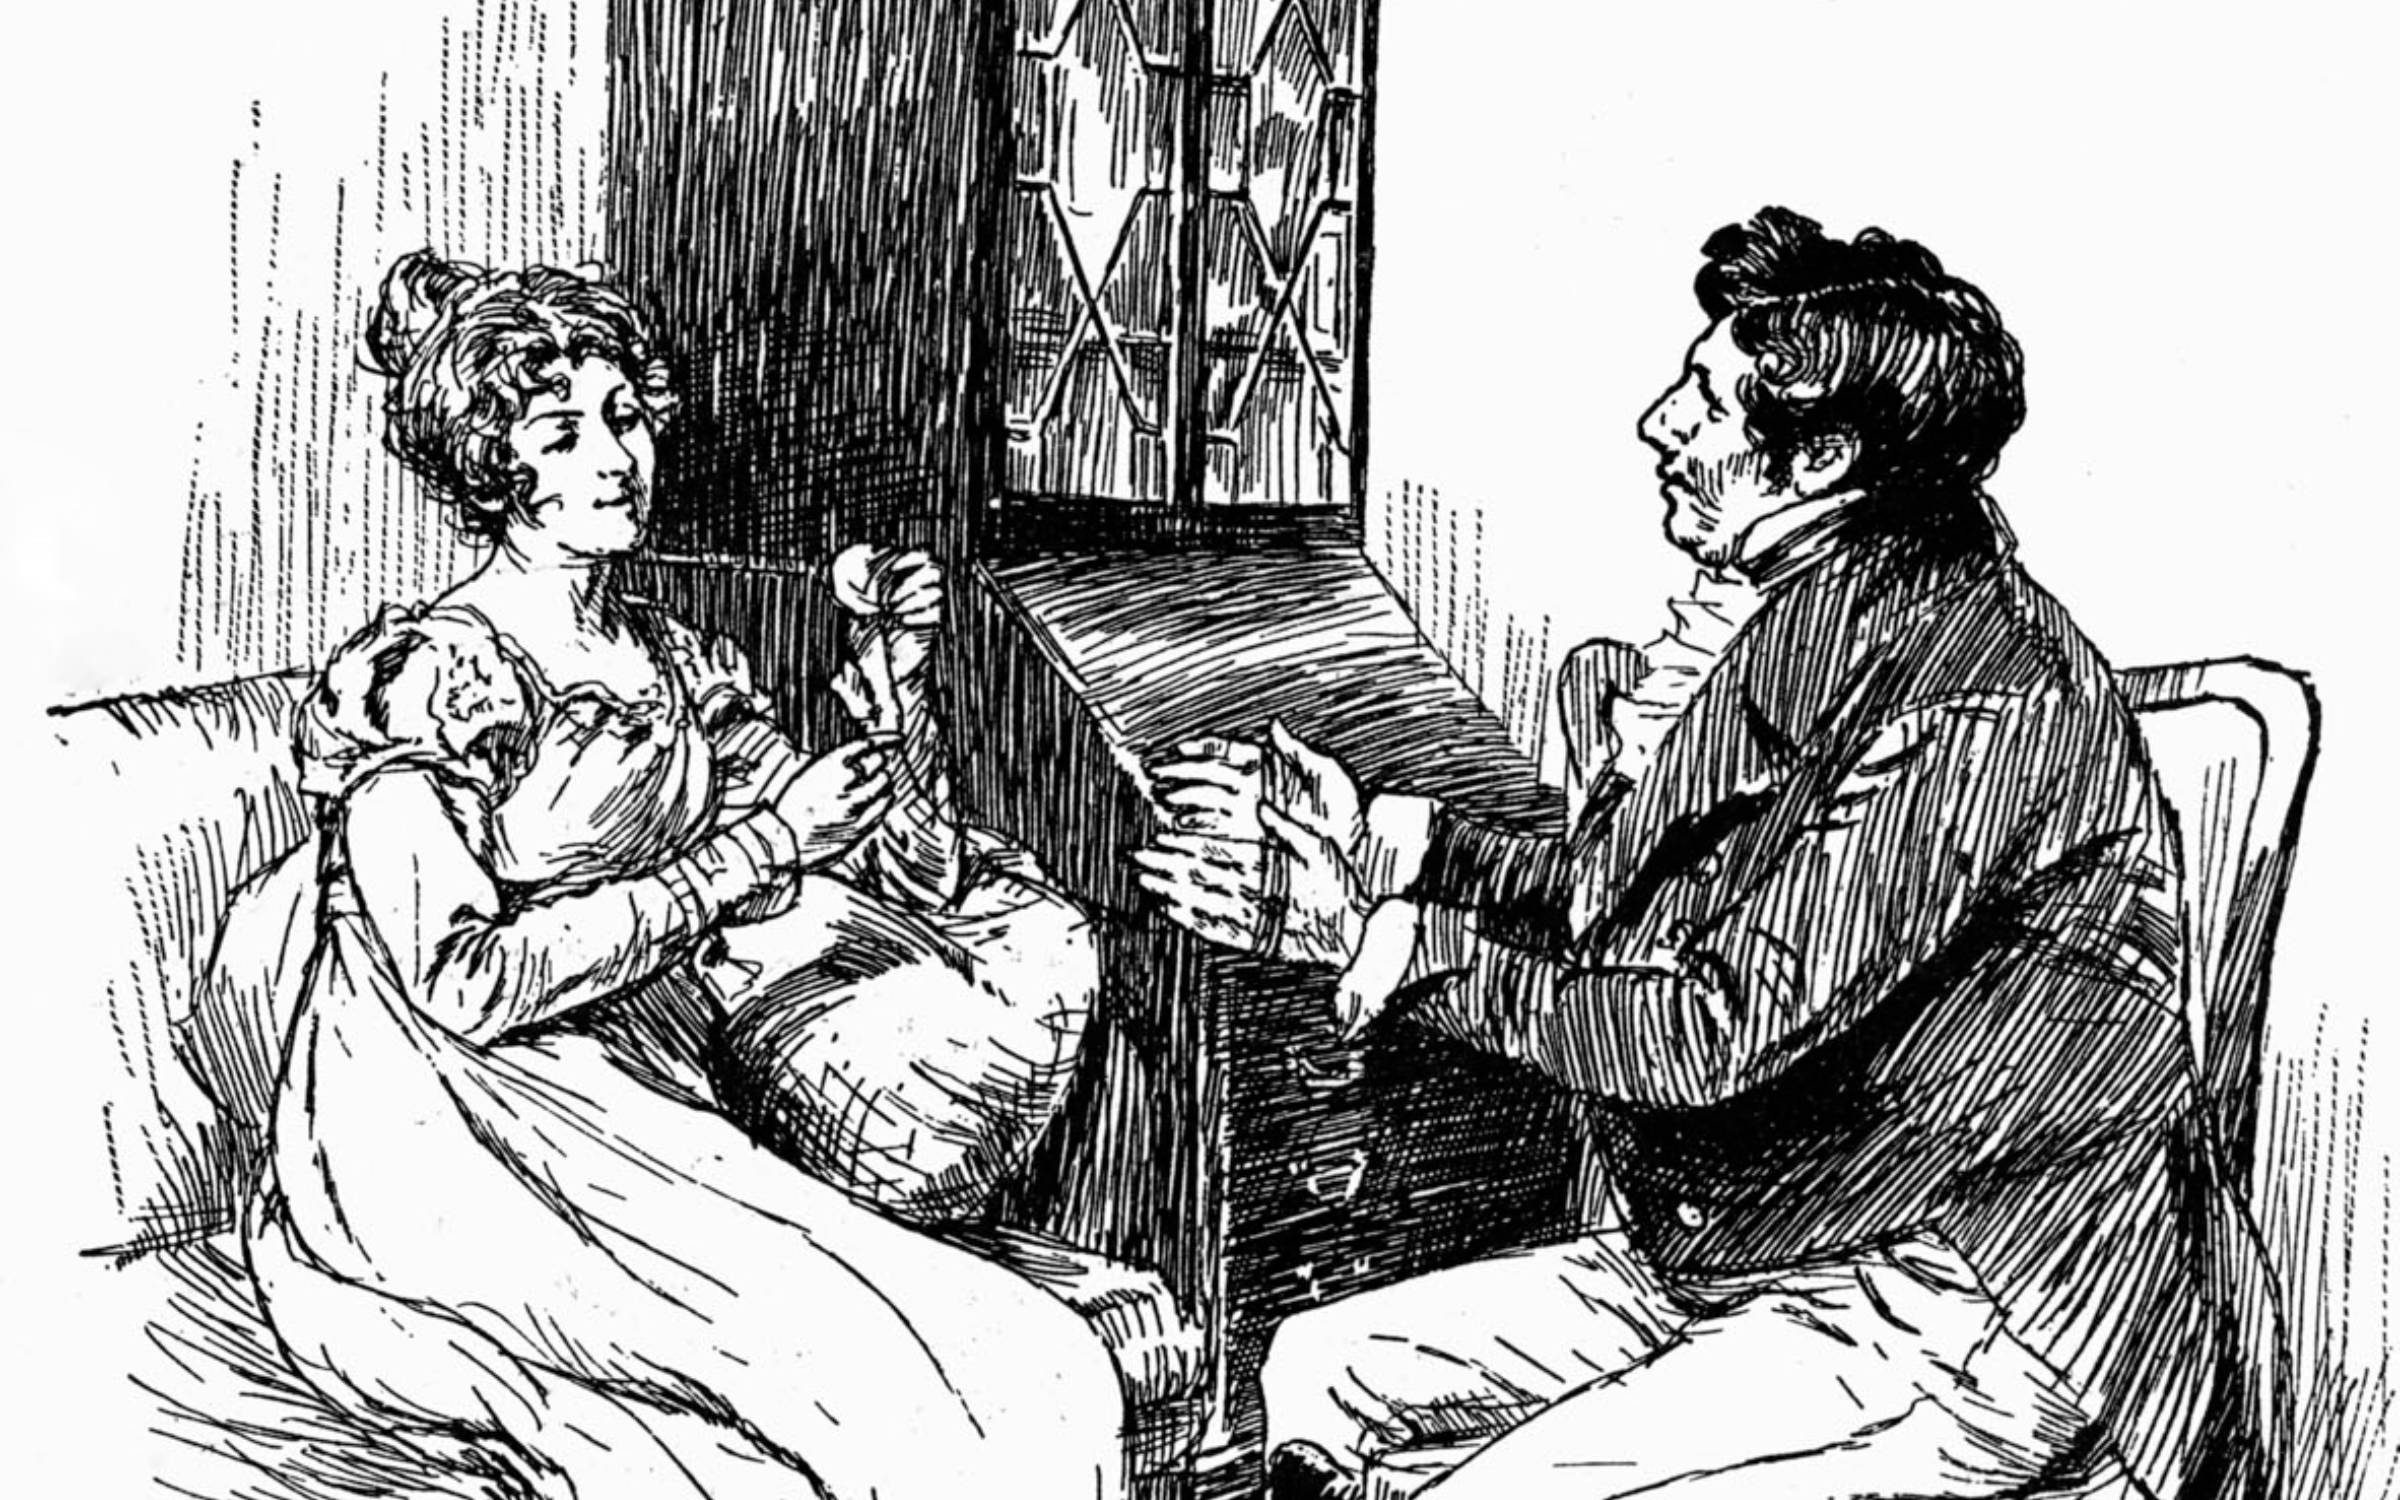 Becky Sharp and Joseph Sedley - characters in 'Vanity Fair',by William Makepeace Thackeray. Drawing by Chris Hammond. Caption reads: 'Bound in a web of green silk'. WMT: English novelist, 18 July 1811 - 24 December 1863. (Photo by Culture Club/Getty Images)